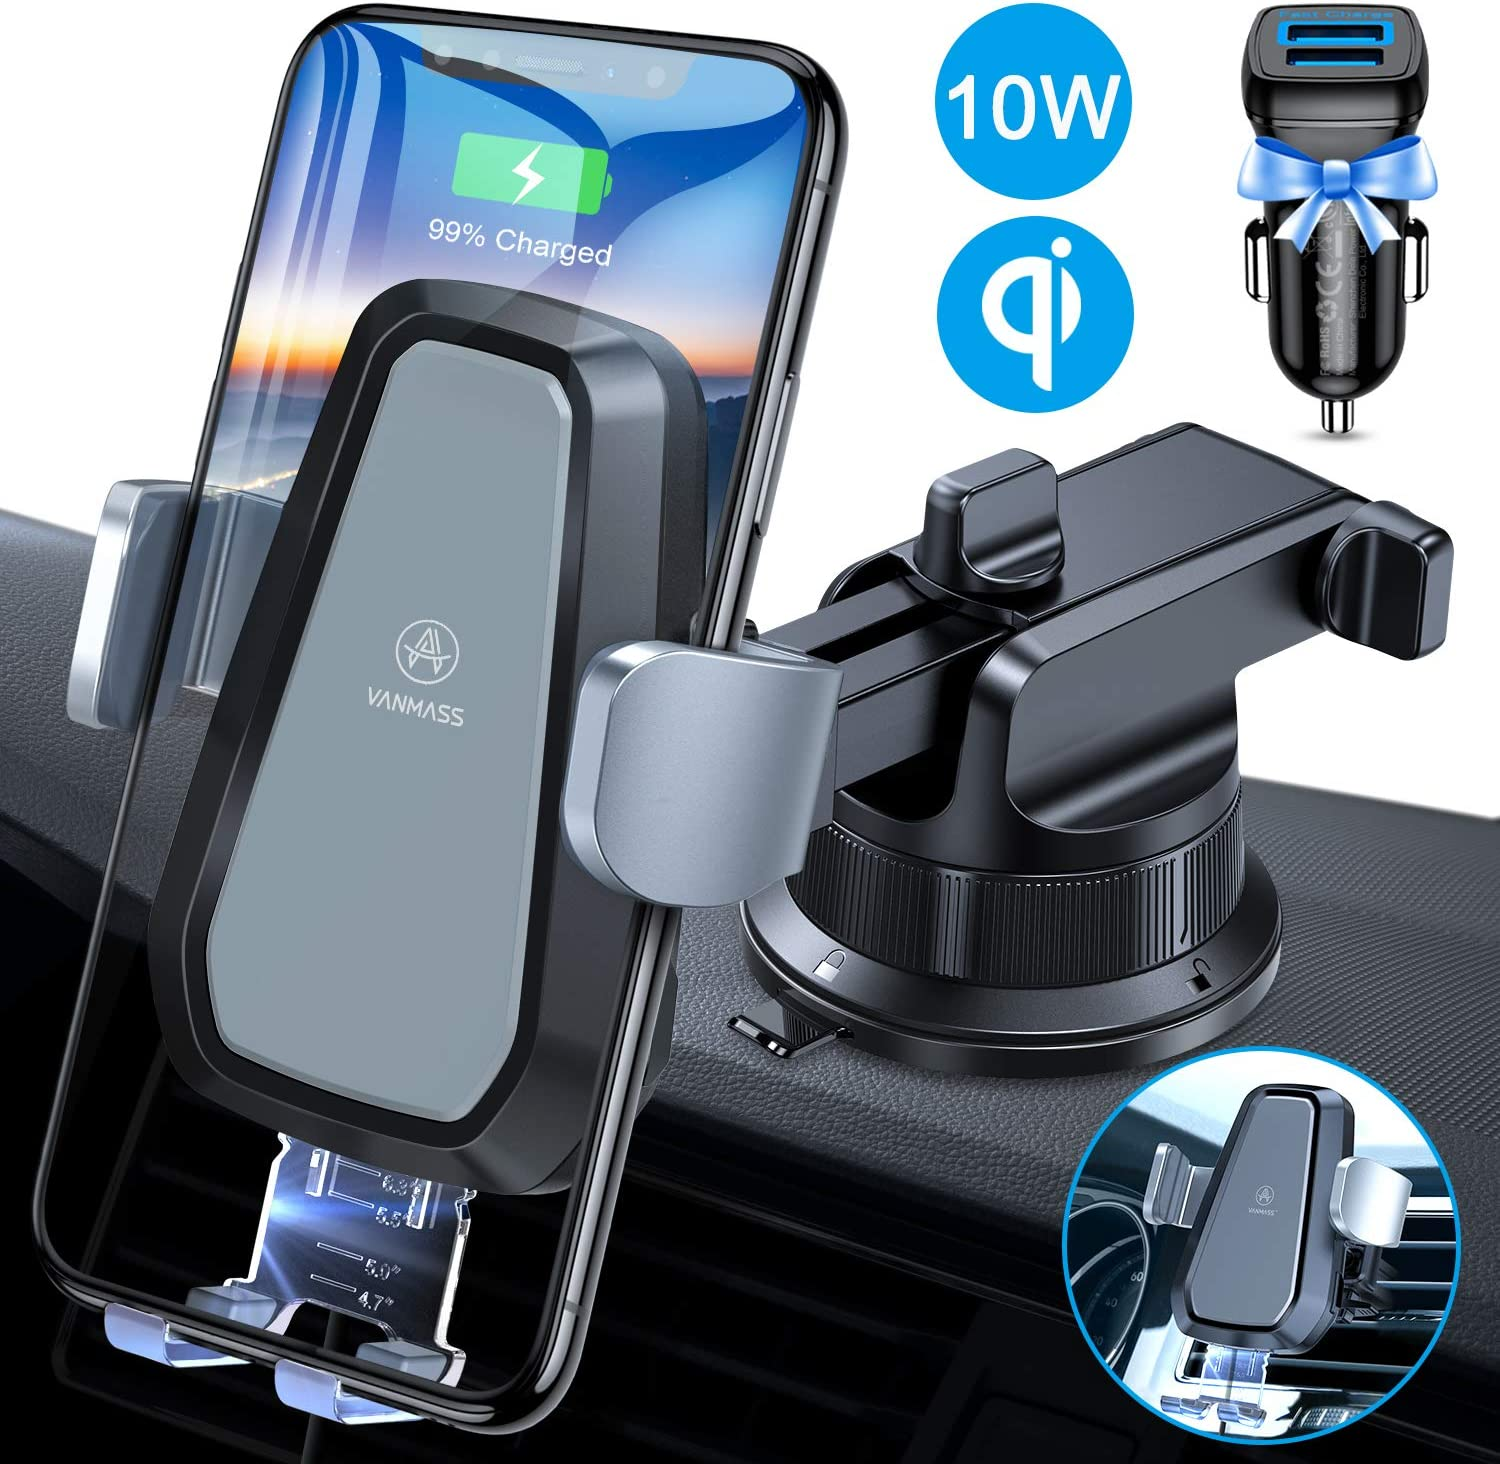 Grebest Item Wireless Car Phone Charger Interior Decoration Car Charger 5W Wireless Air Vent Mount Gravity Car Phone Fast Charger Bracket Holder Stand